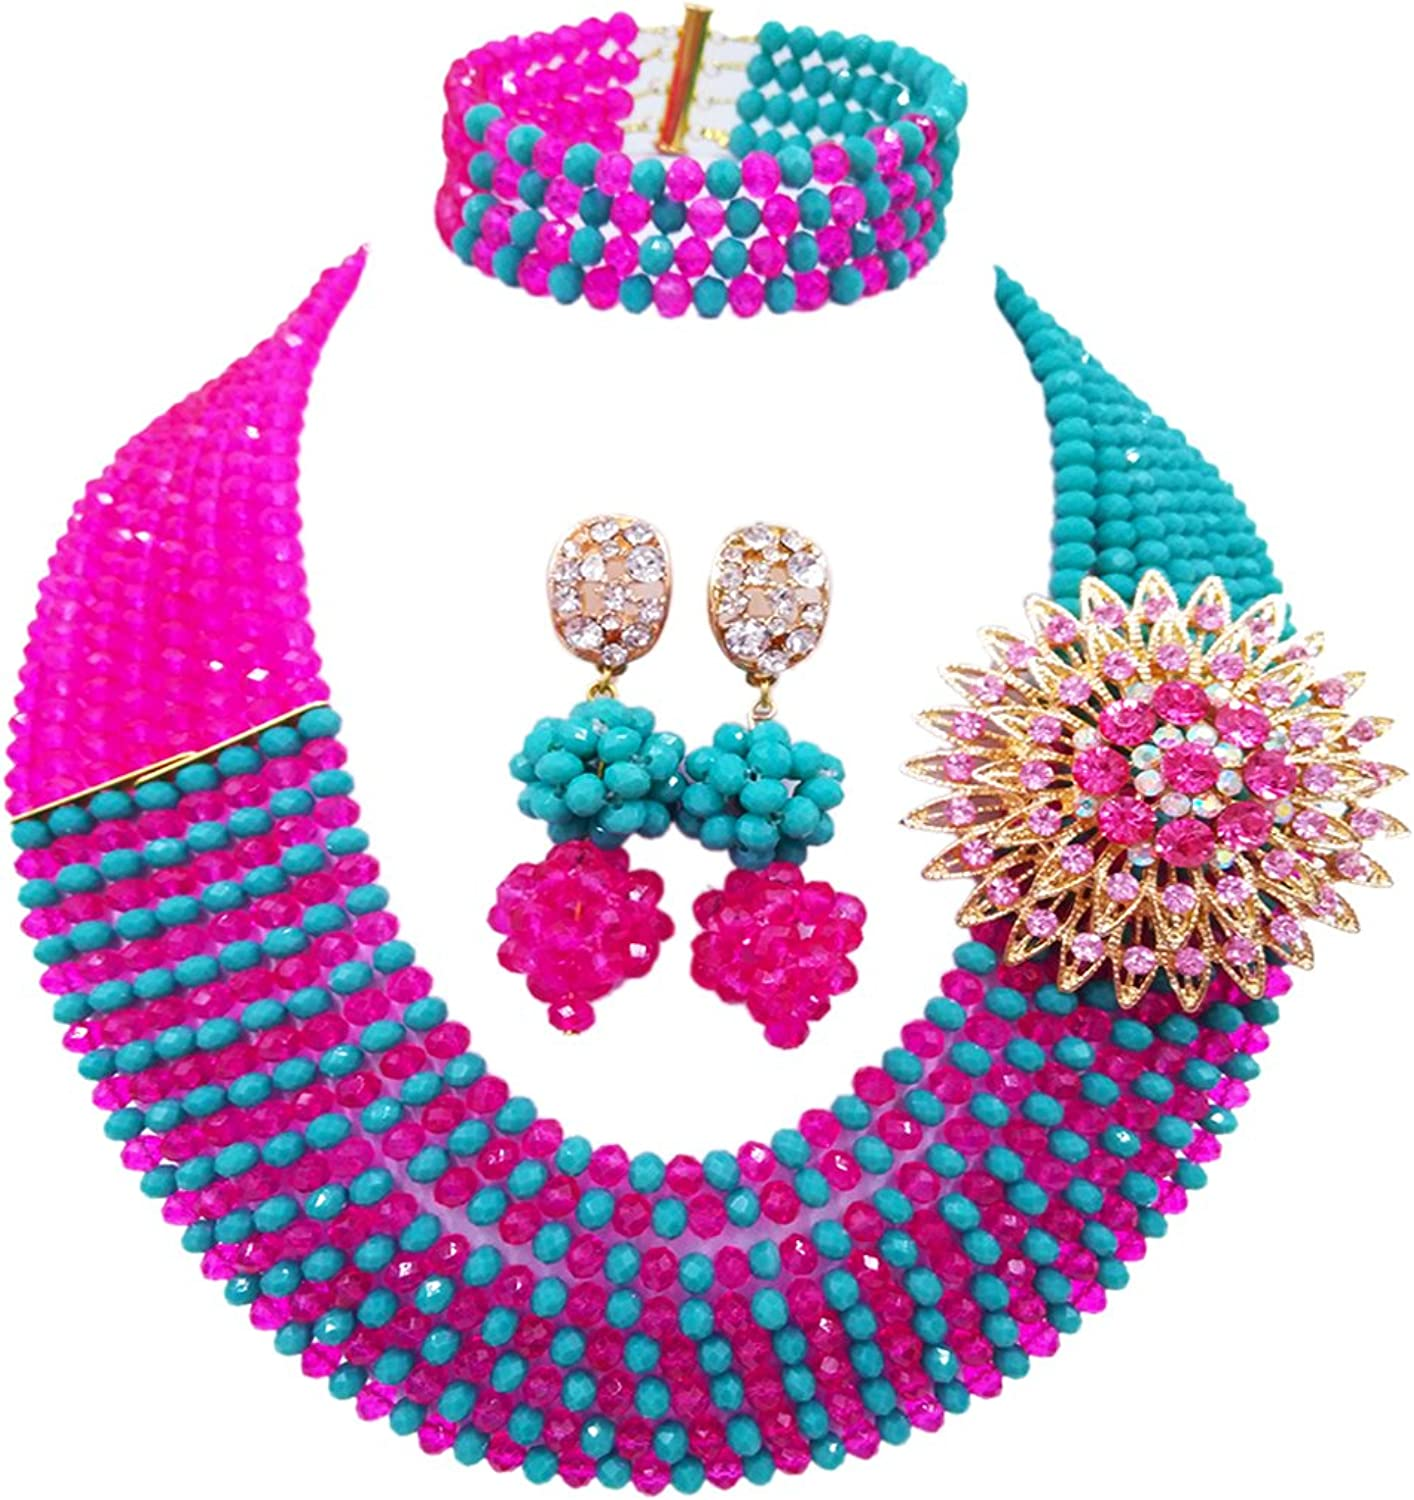 Laanc Jewelry 8 Rows Royal bluee Multicolor Gradient Crystal African Beads Nigerian Wedding Jewelry Sets